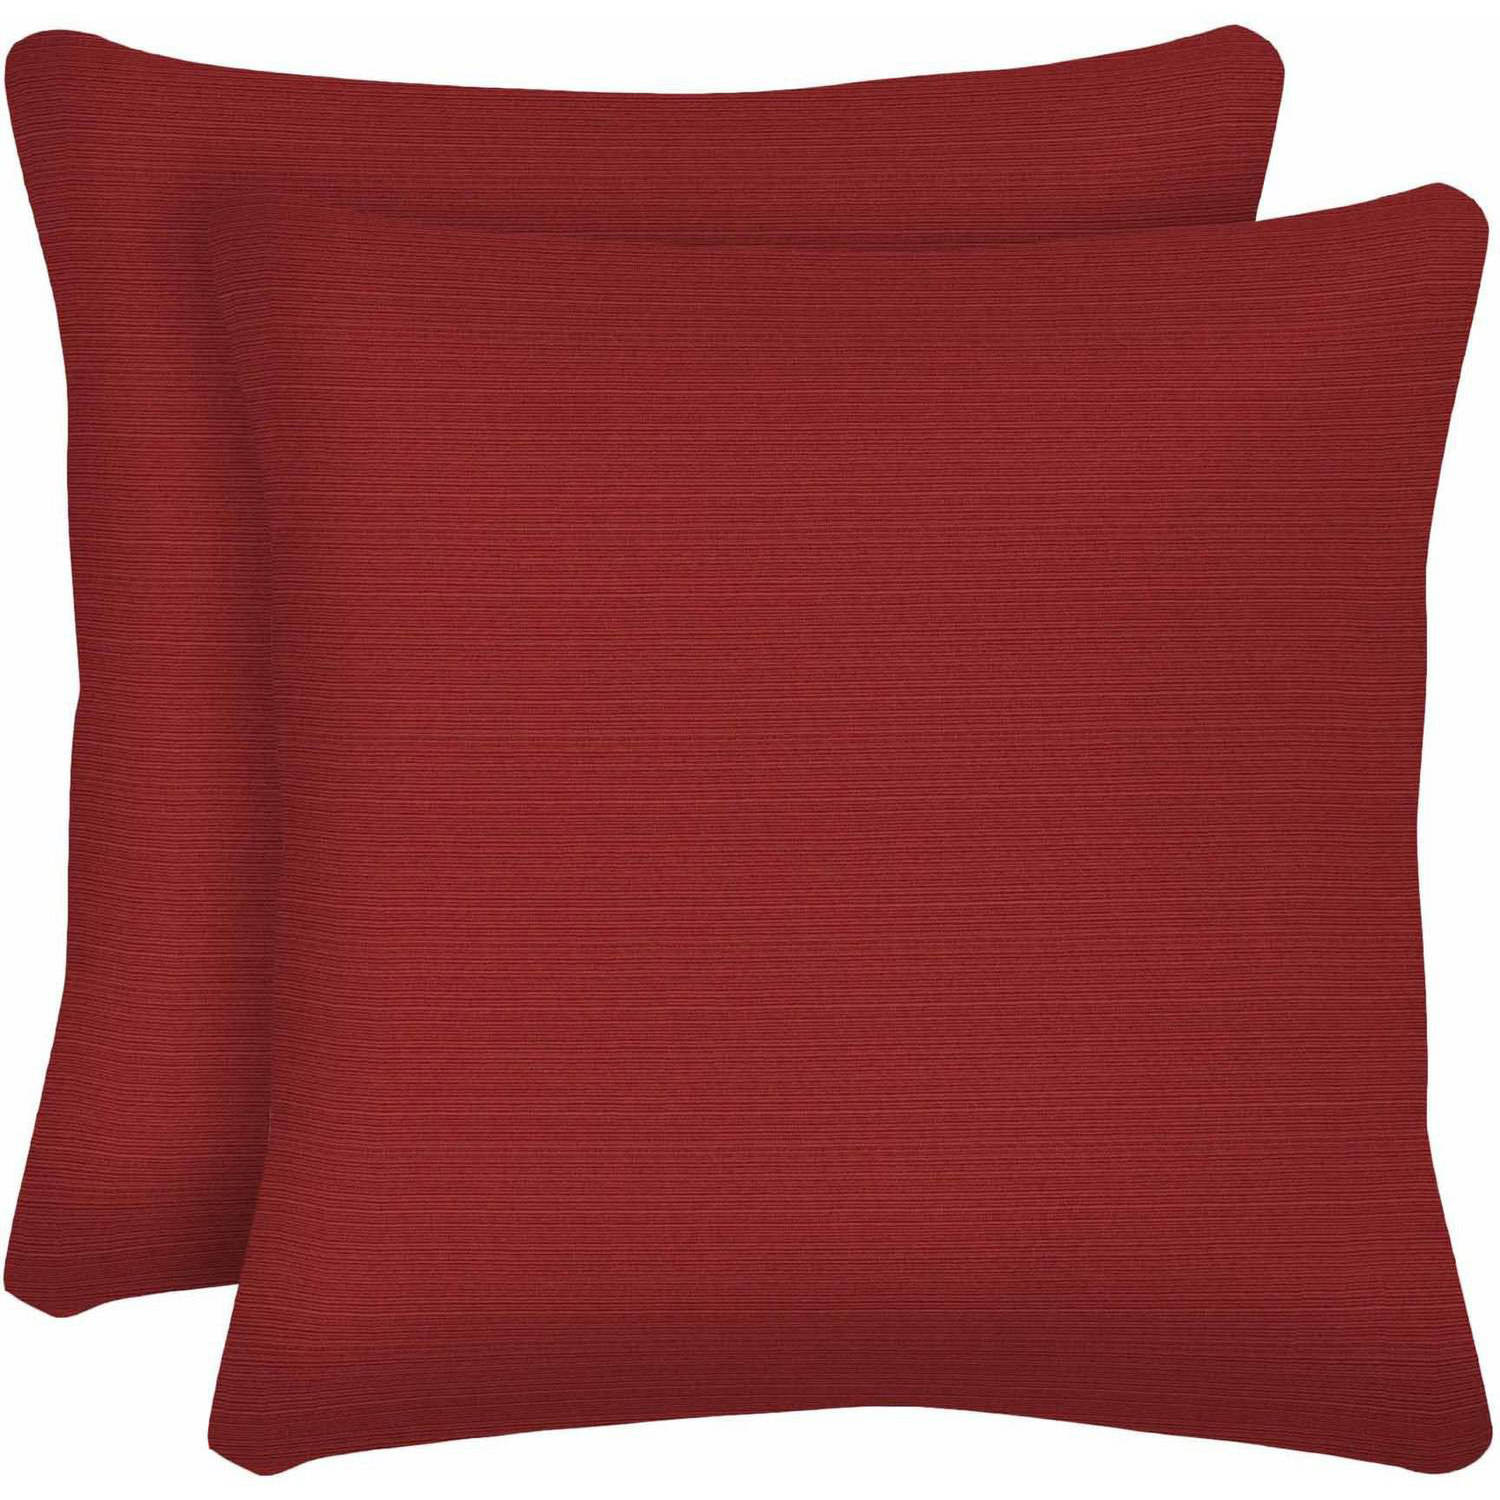 "Better Homes and Gardens Outdoor Patio 16"" Square Toss Pillow, Set of 2, Red"